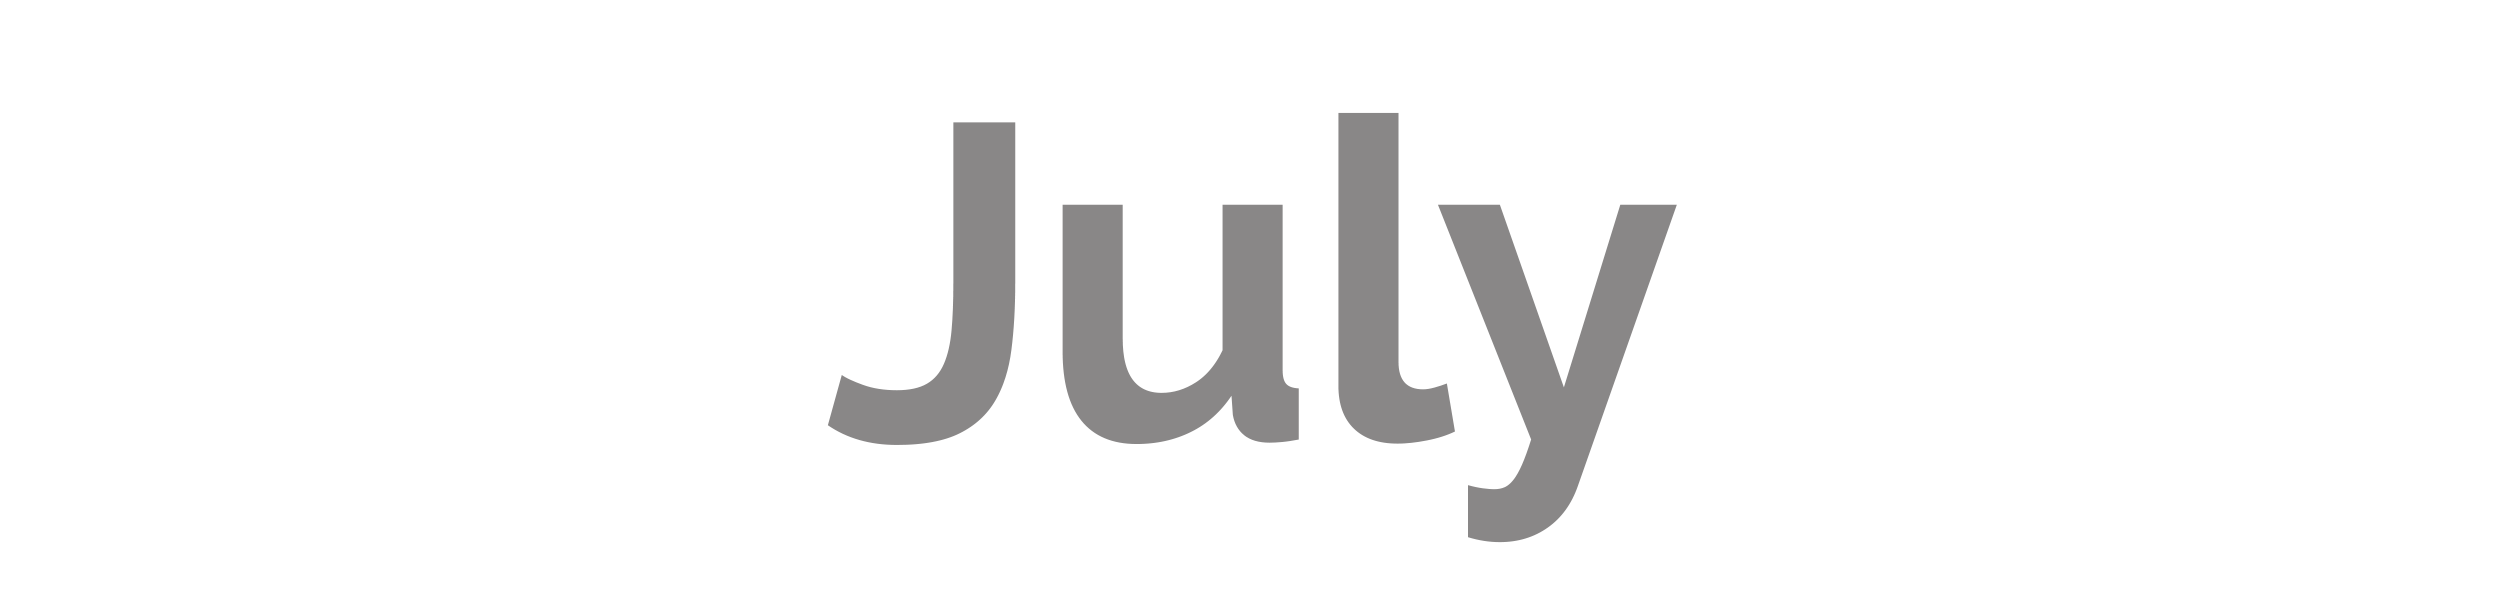 July Button.png